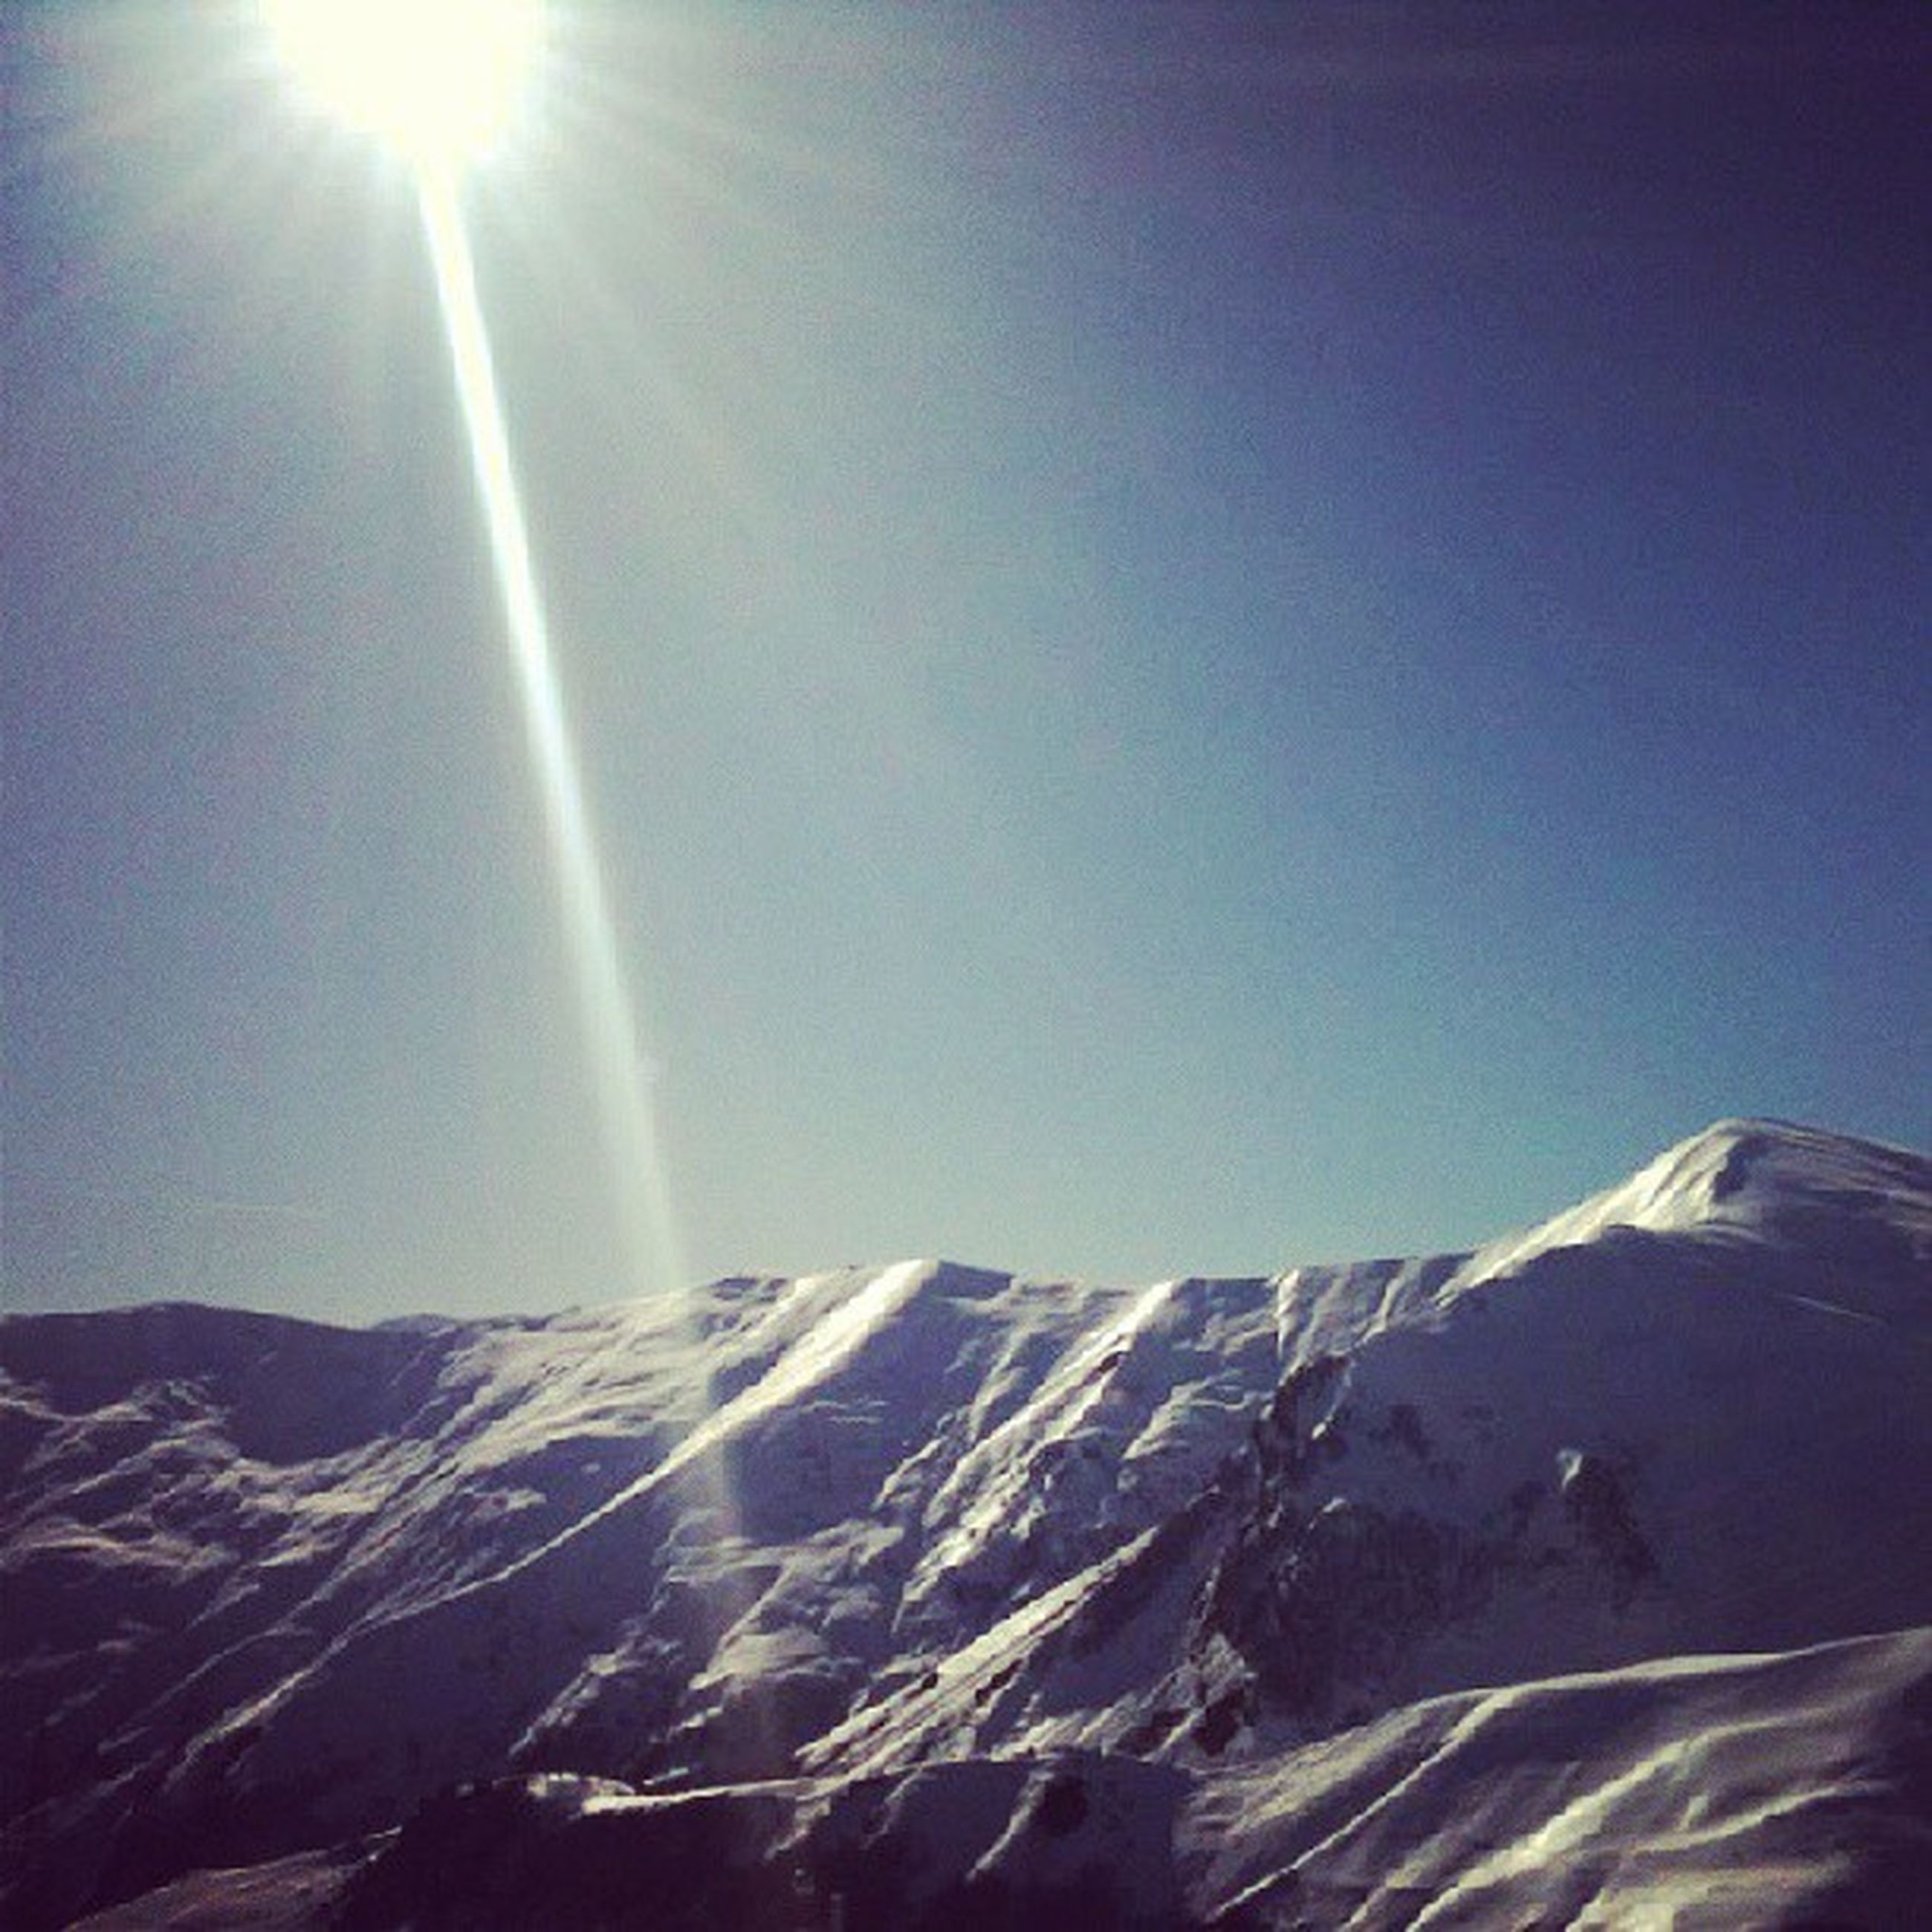 sun, sunbeam, mountain, tranquility, scenics, tranquil scene, sunlight, lens flare, snow, beauty in nature, clear sky, cold temperature, winter, nature, mountain range, landscape, blue, low angle view, snowcapped mountain, copy space